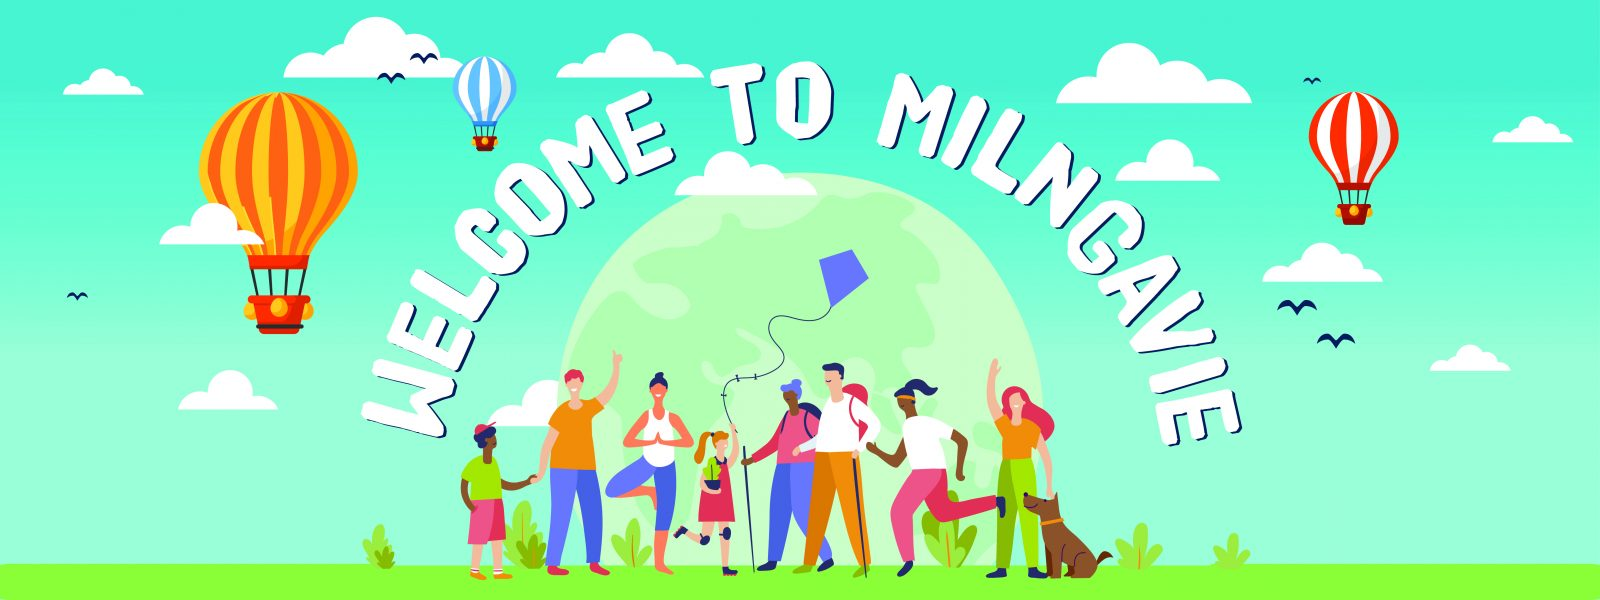 welcome to Milngavie, start of the West Highland Way and other walks in Central Scotland